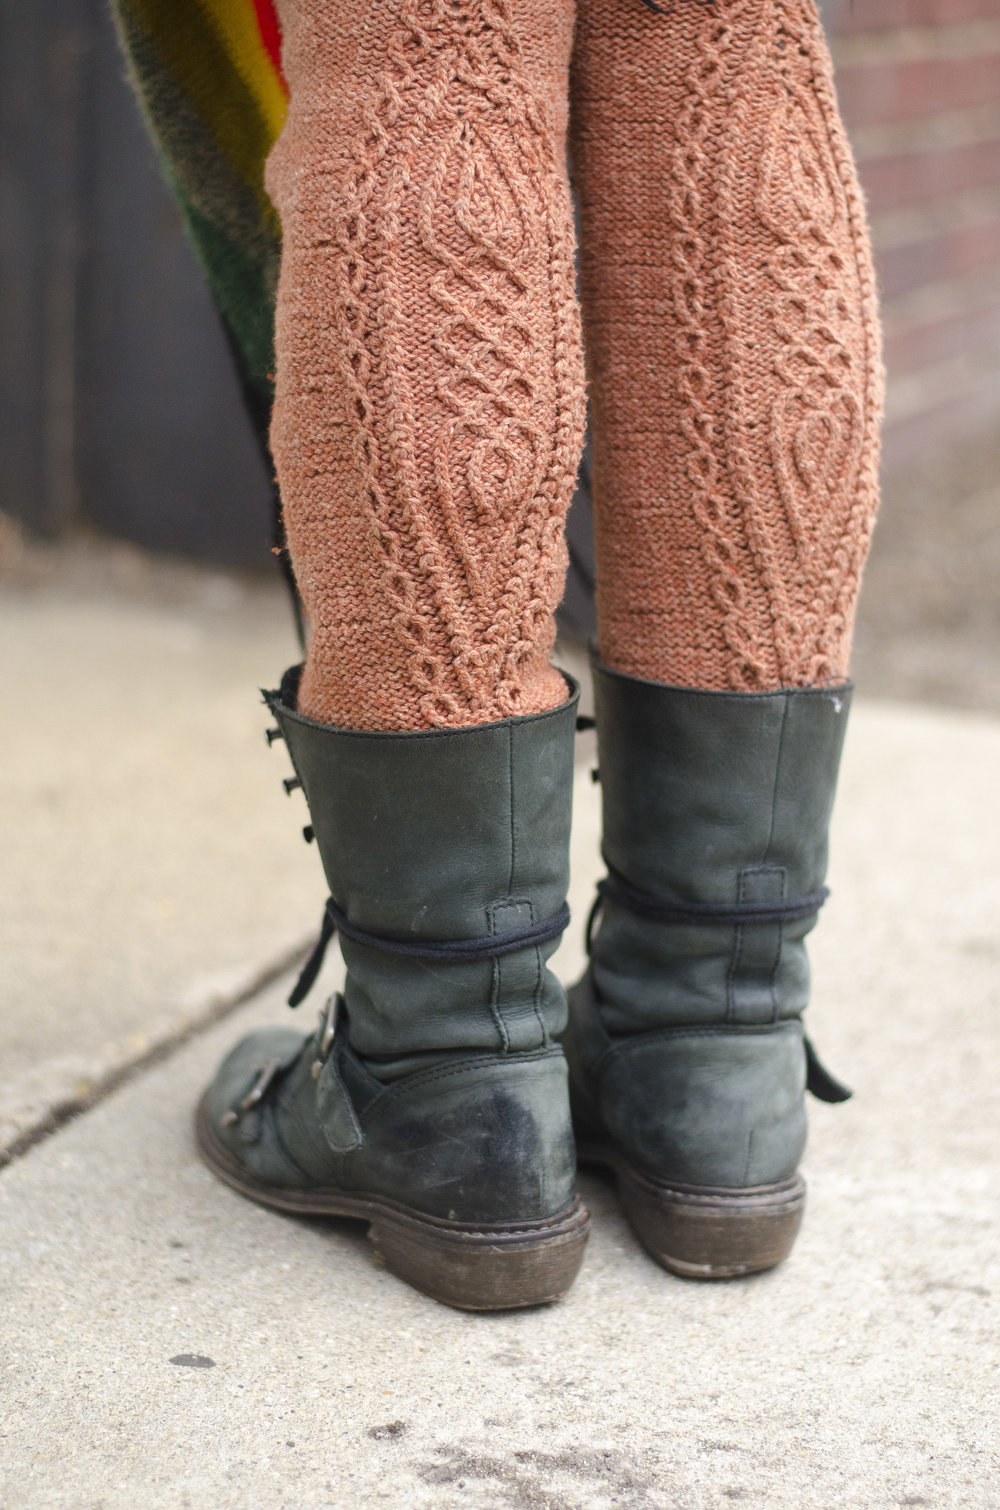 Traveling cable legwarmers